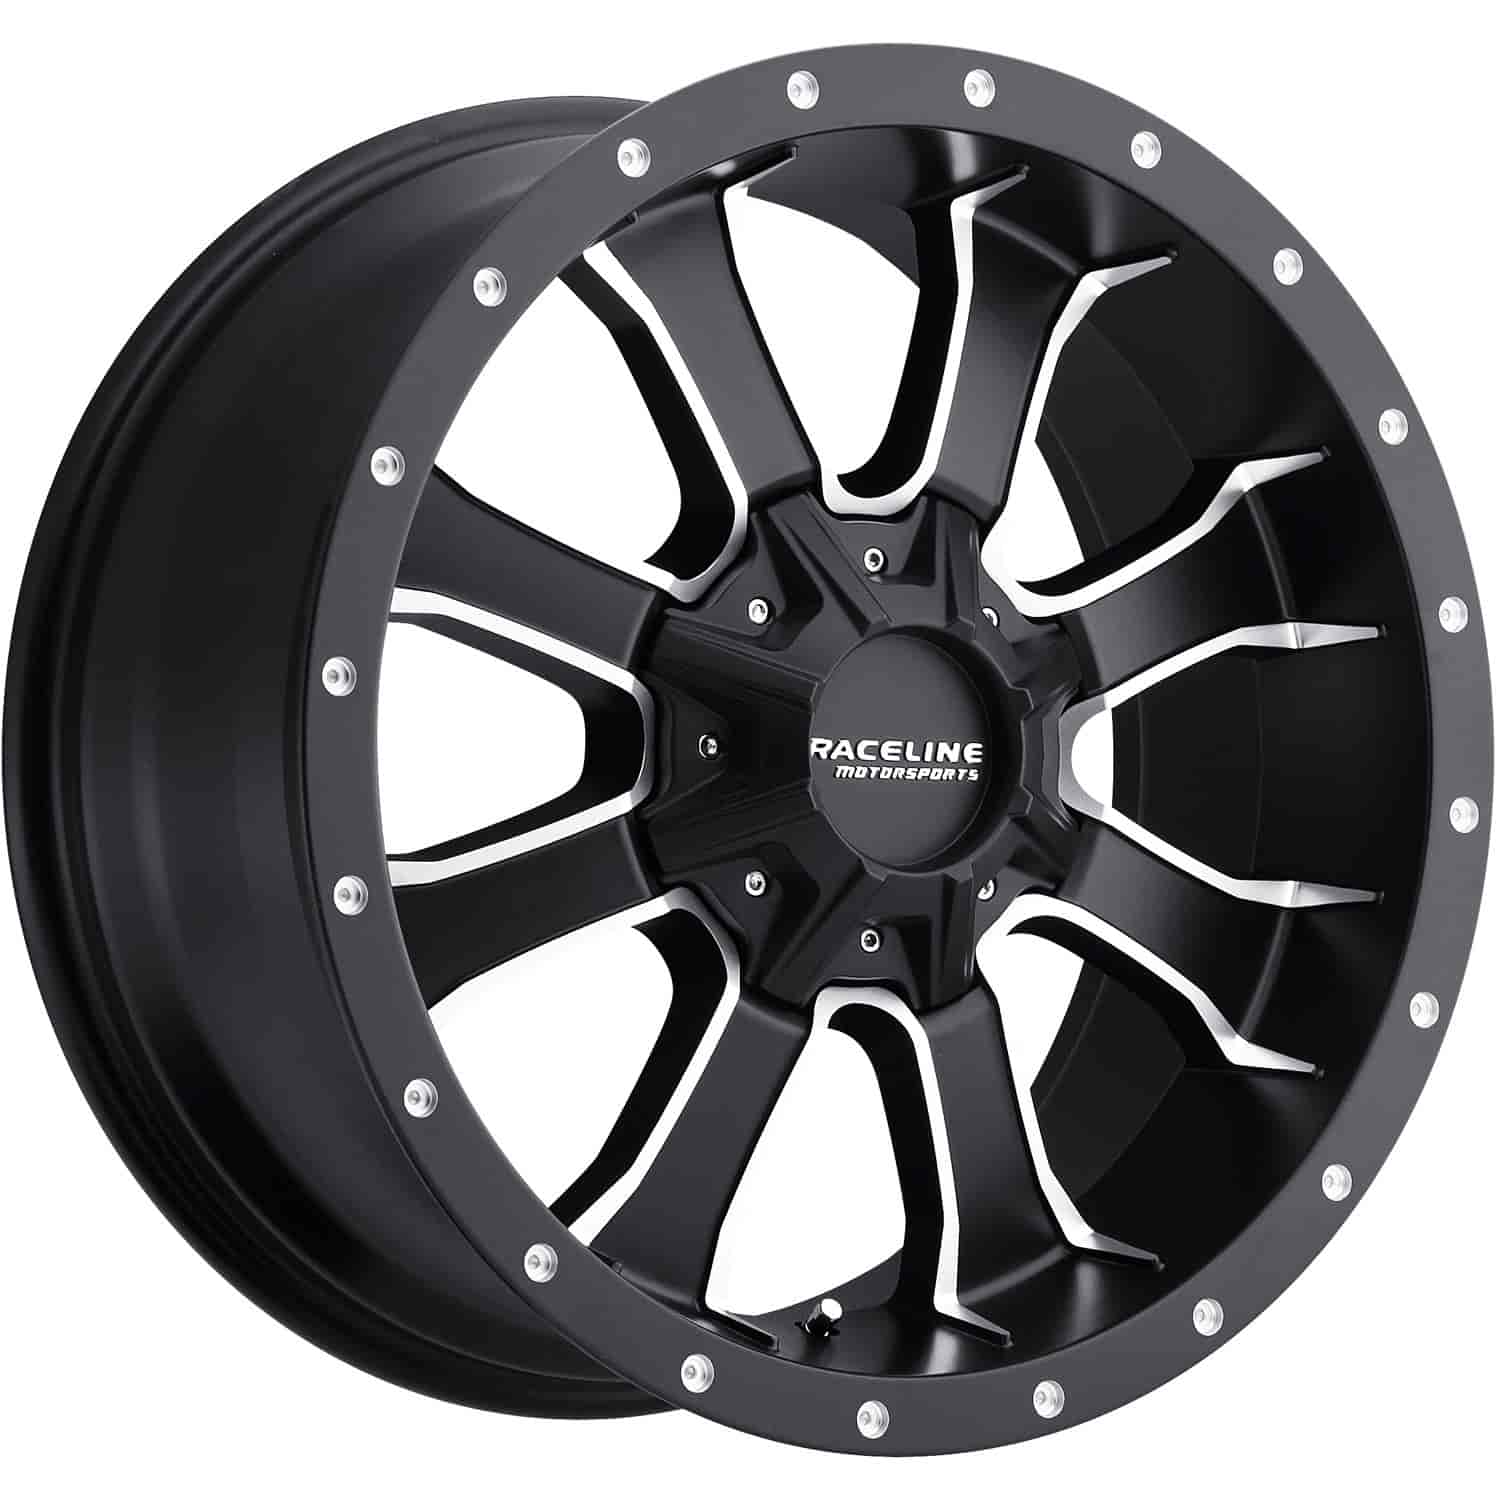 Raceline Wheels 927M-2909625